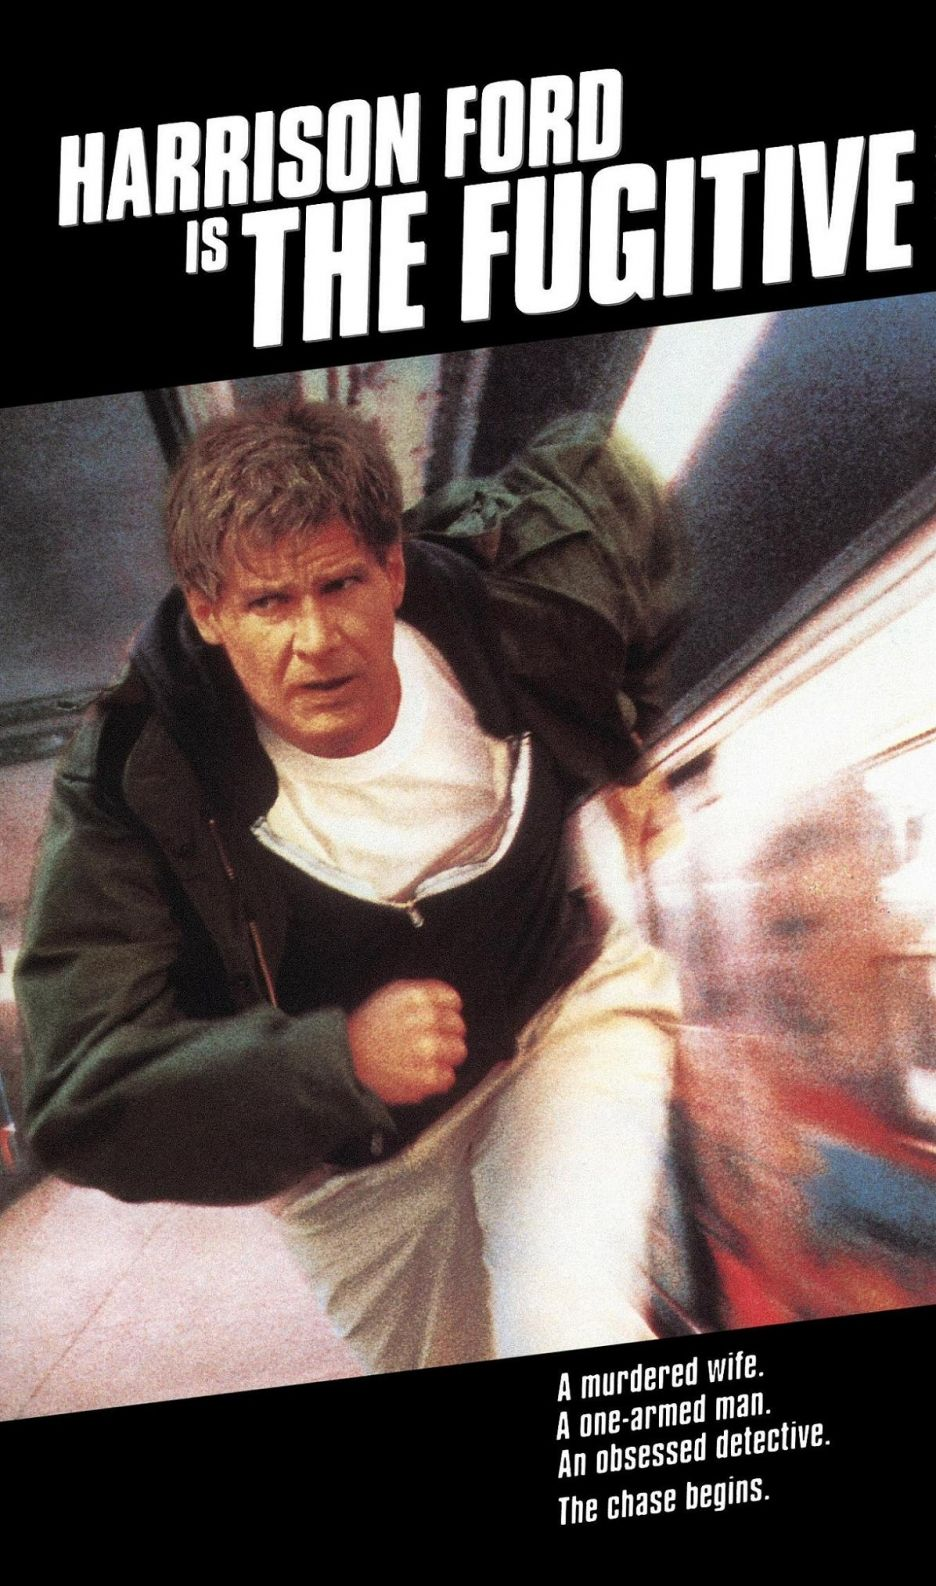 New The Fugitive Movie On the Way | Collider